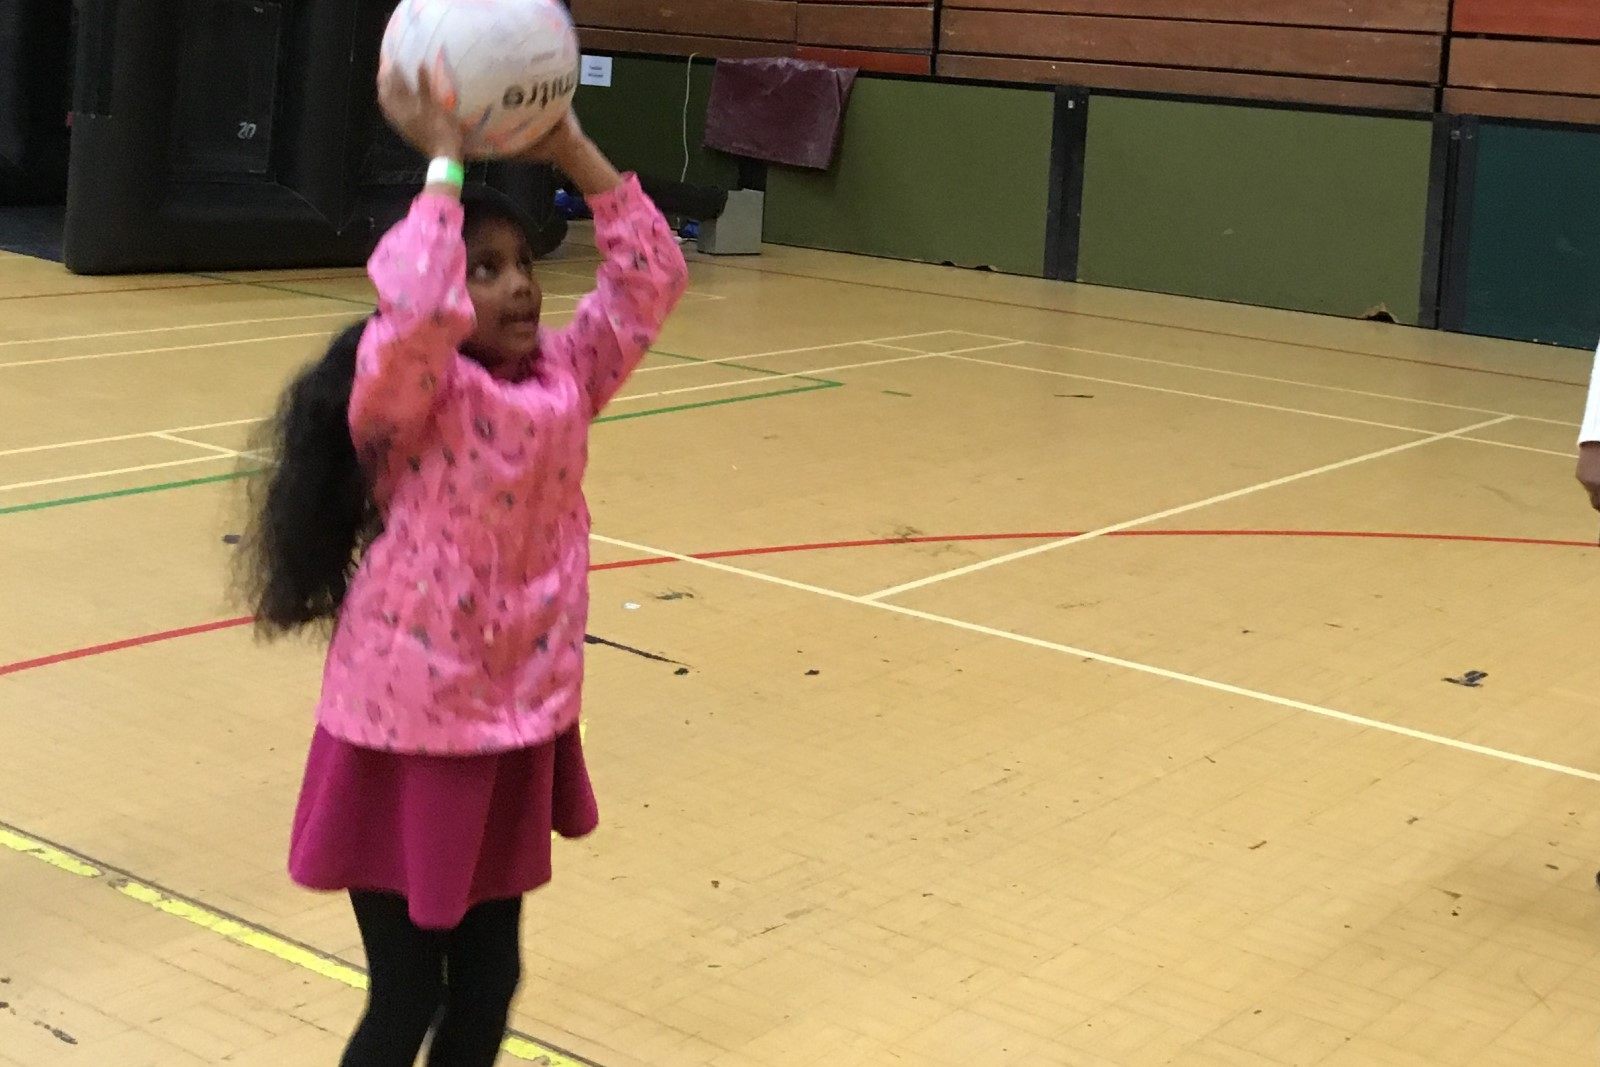 Girl in pink top holding netball above head.jpg